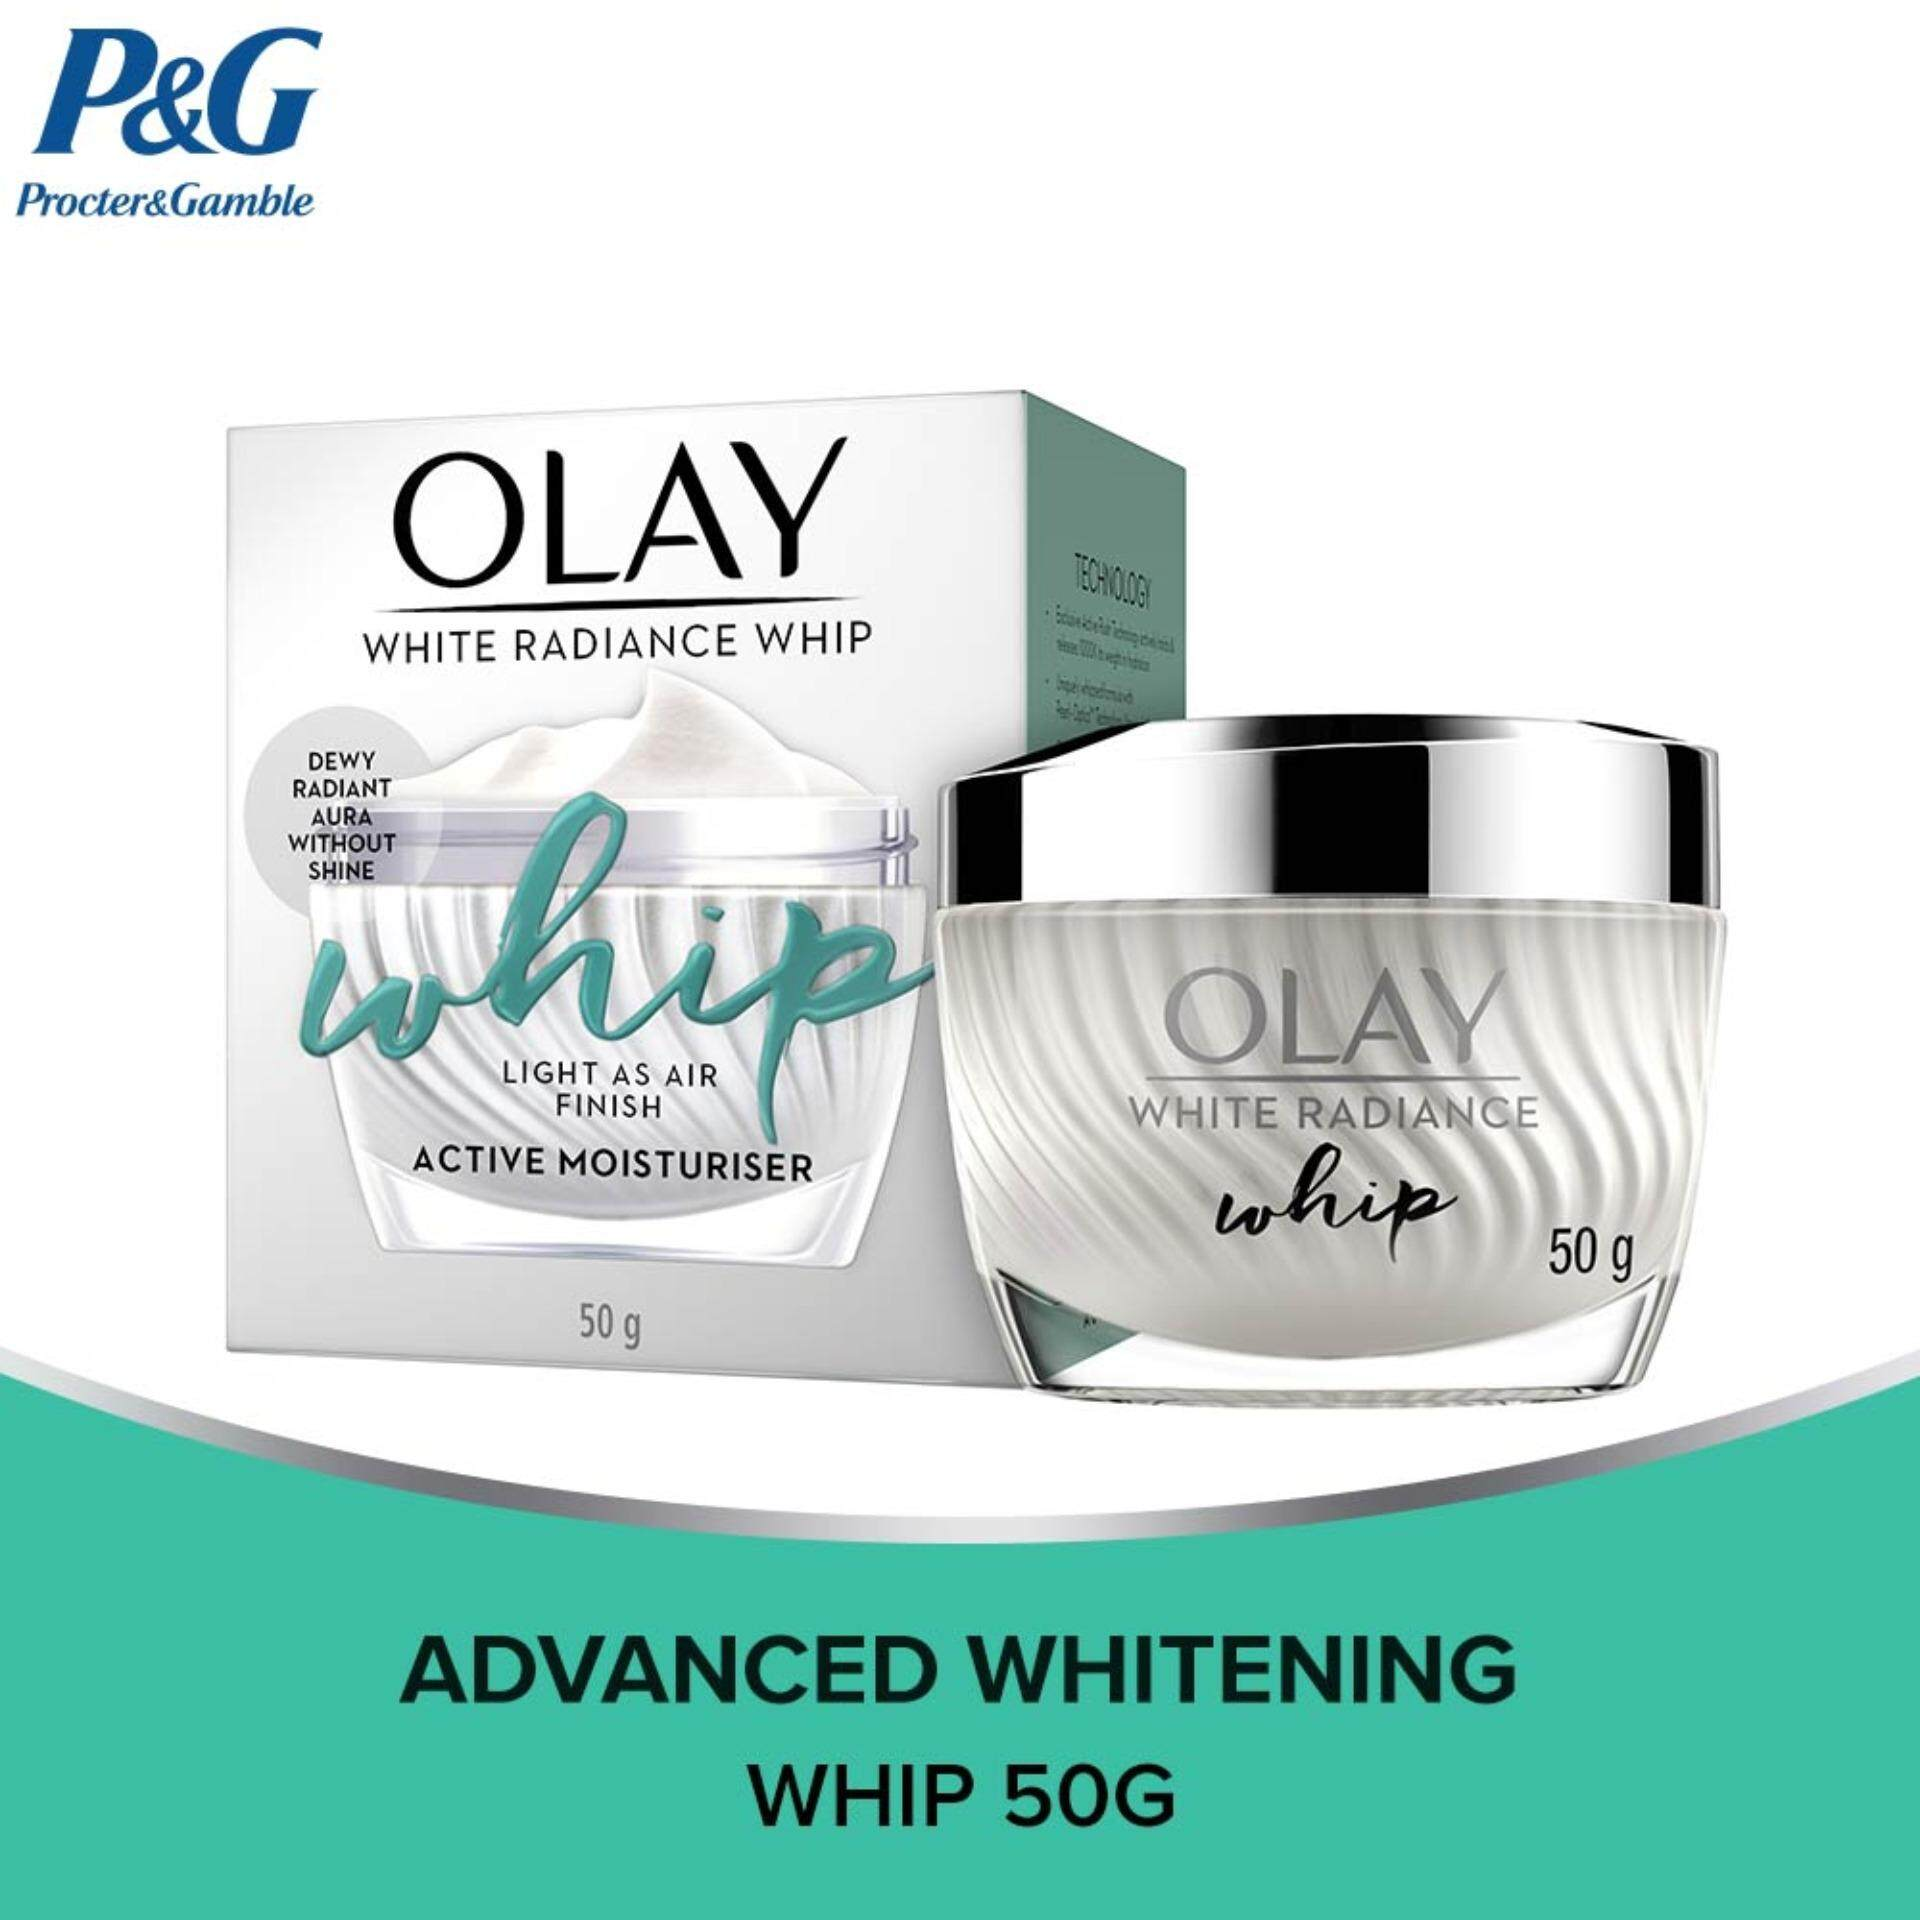 Olay White Radiance Whip 50g